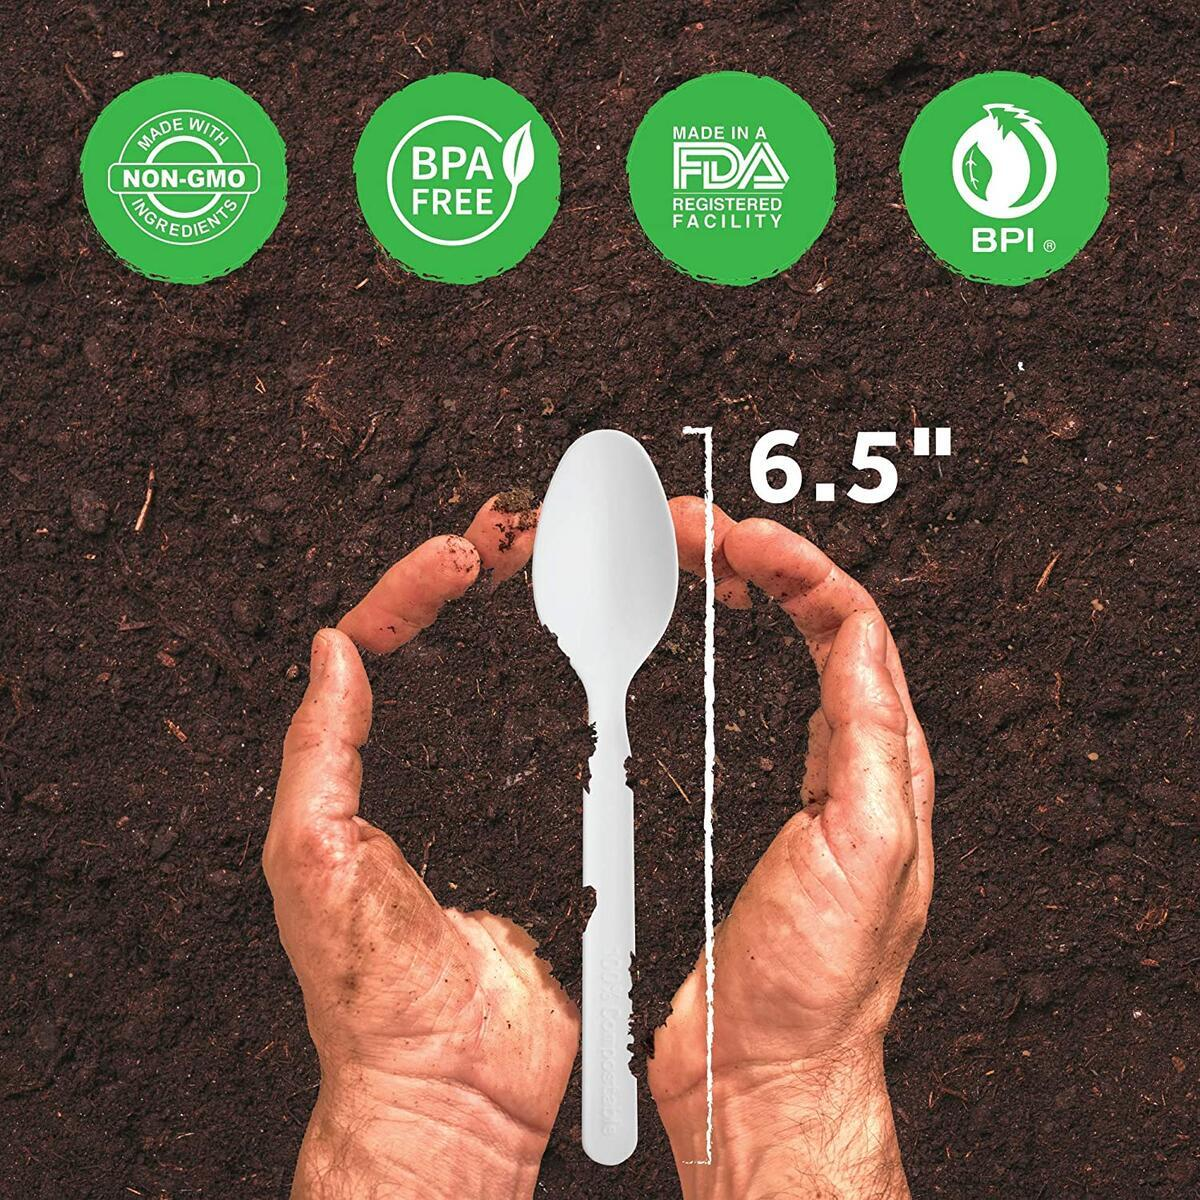 Compostable Spoons [140 Pack] - Biodegradable Cutlery Utensils - Large 7 Inch Plastic Spoon Alternative - Disposable Silverware Eco Friendly - Natural White